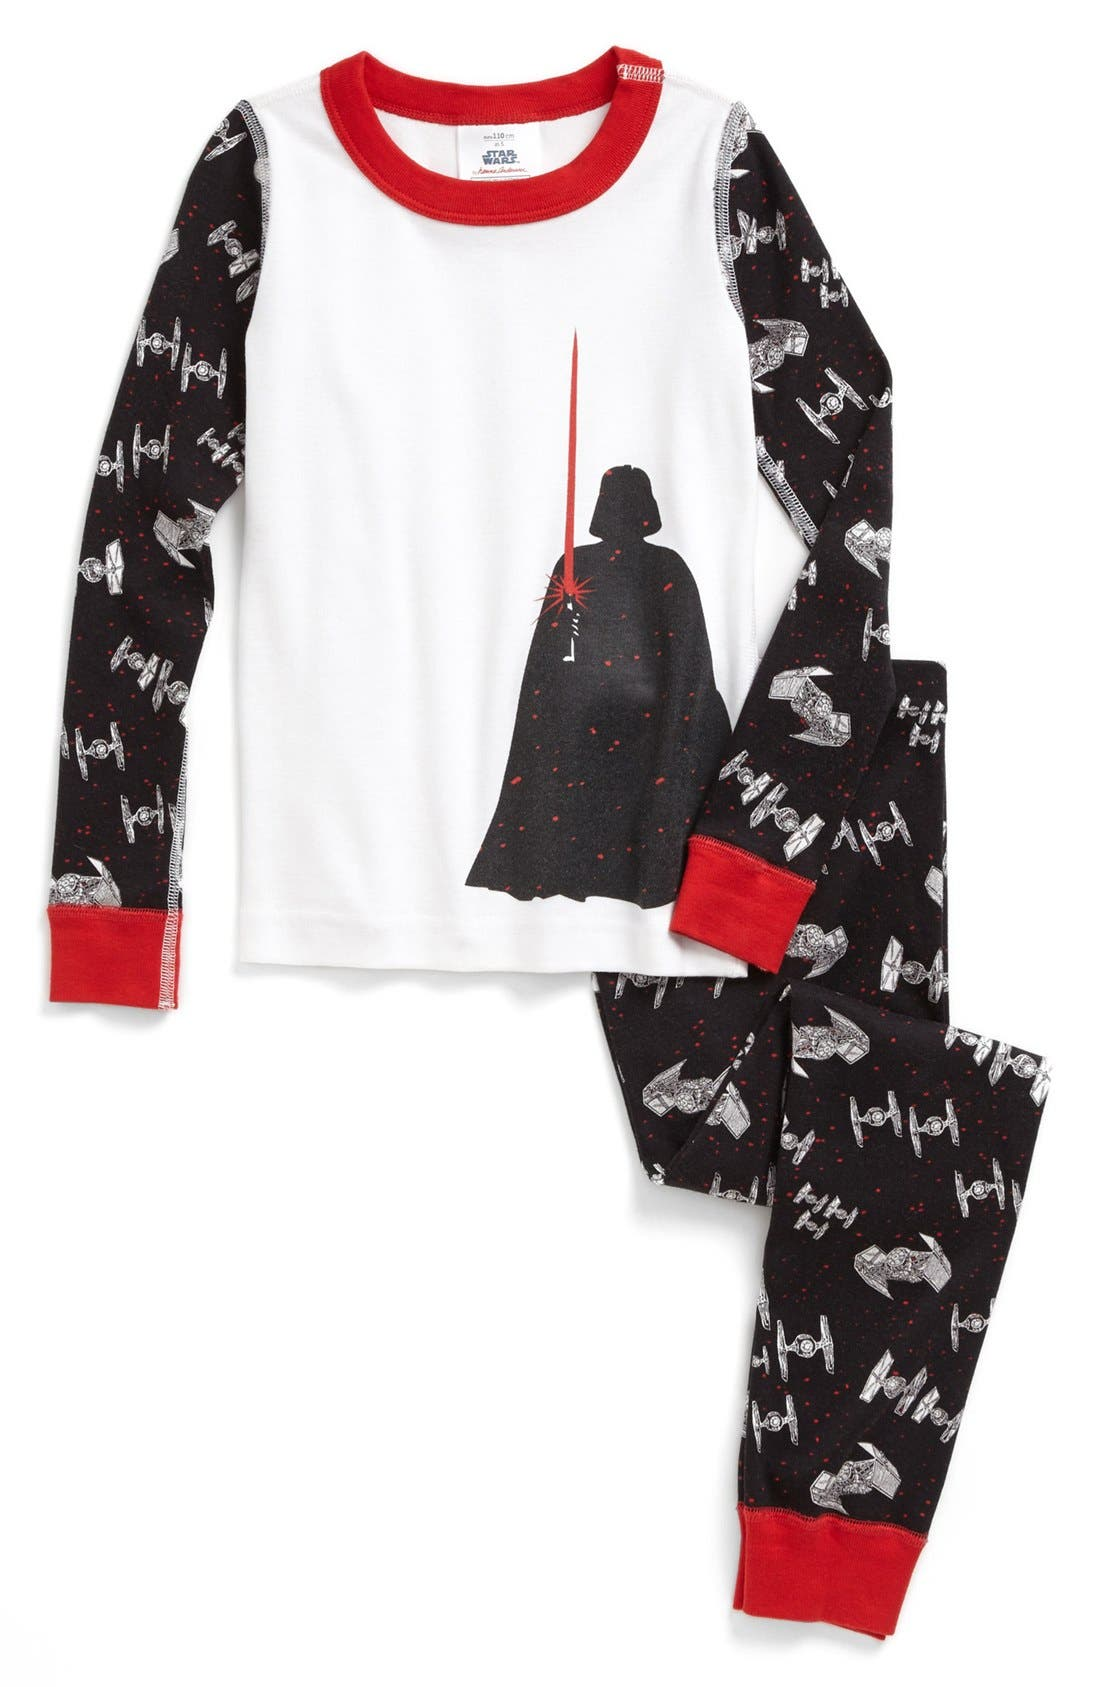 Main Image - Hanna Andersson 'Star Wars™ - Darth's Light' Two-Piece Fitted Organic Cotton Pajamas (Toddler Boys)